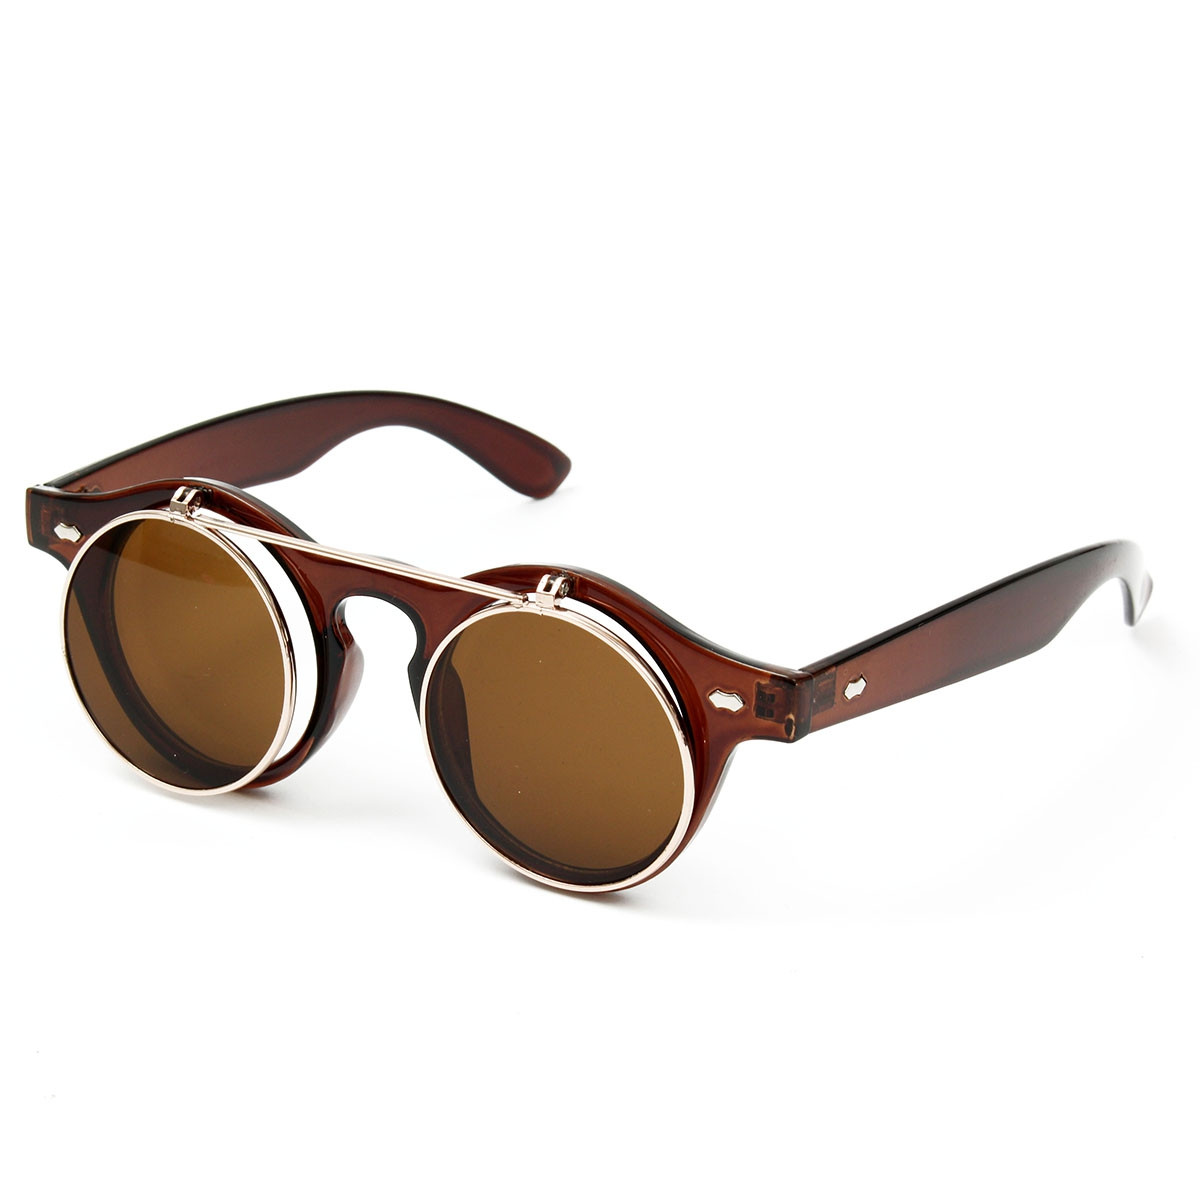 Unisex Men Women Vintage Steampunk Round Lens Sunglasses Cyber Goggles Retro Glasses